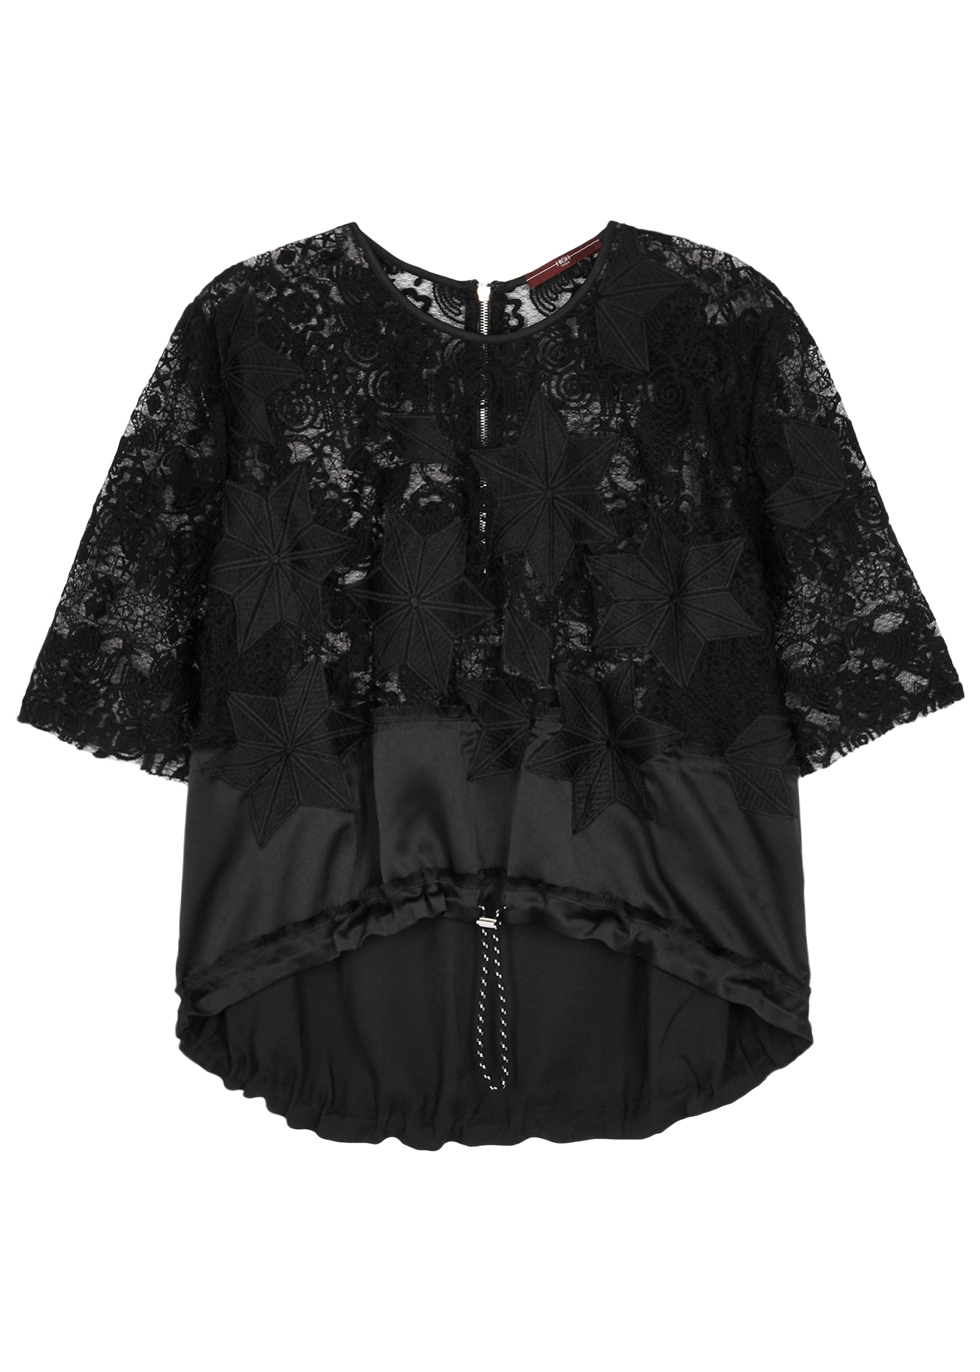 HIGH STARLIT EMBROIDERED LACE TOP